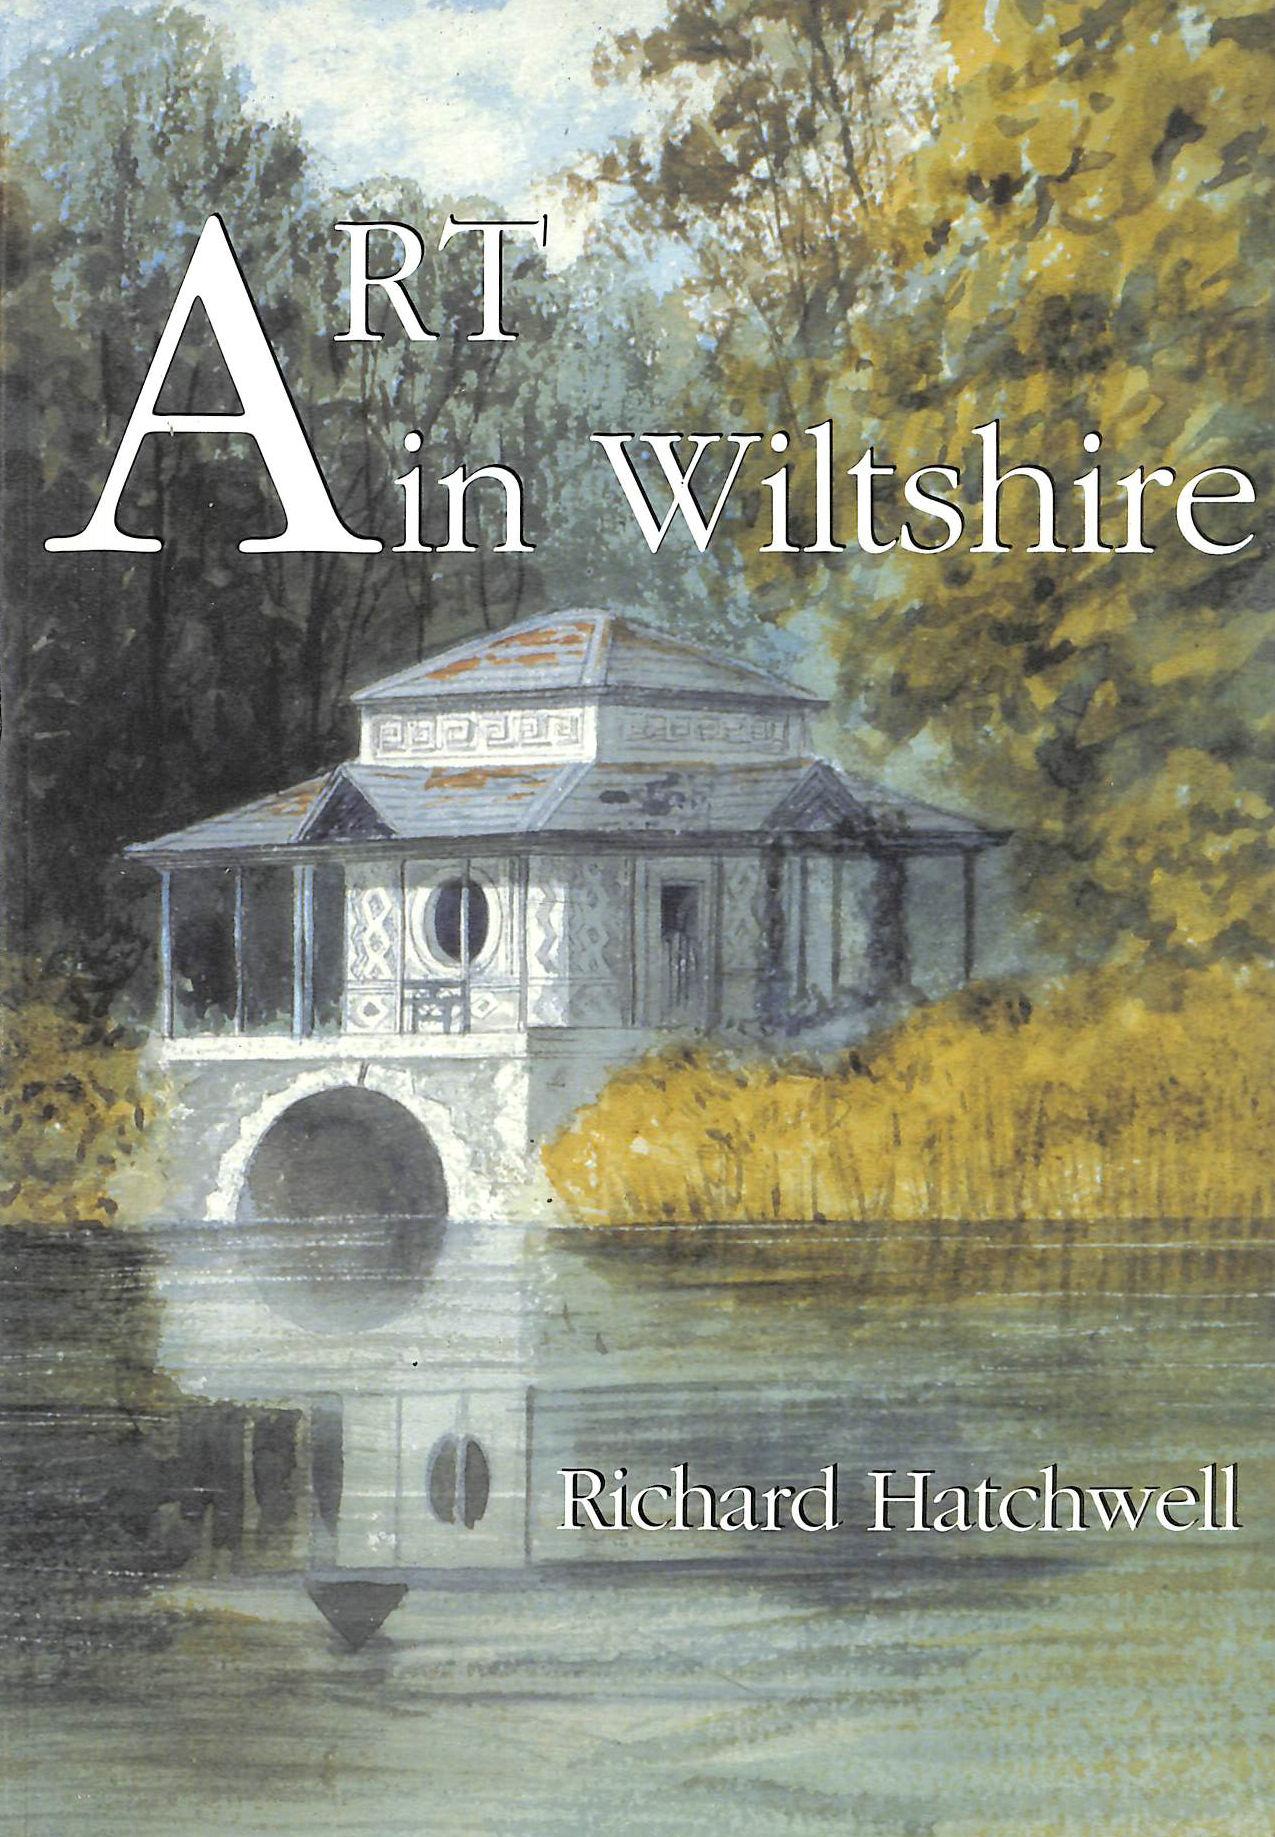 Image for Art in Wiltshire: From the Wiltshire Archaeological and Natural History Society Collection